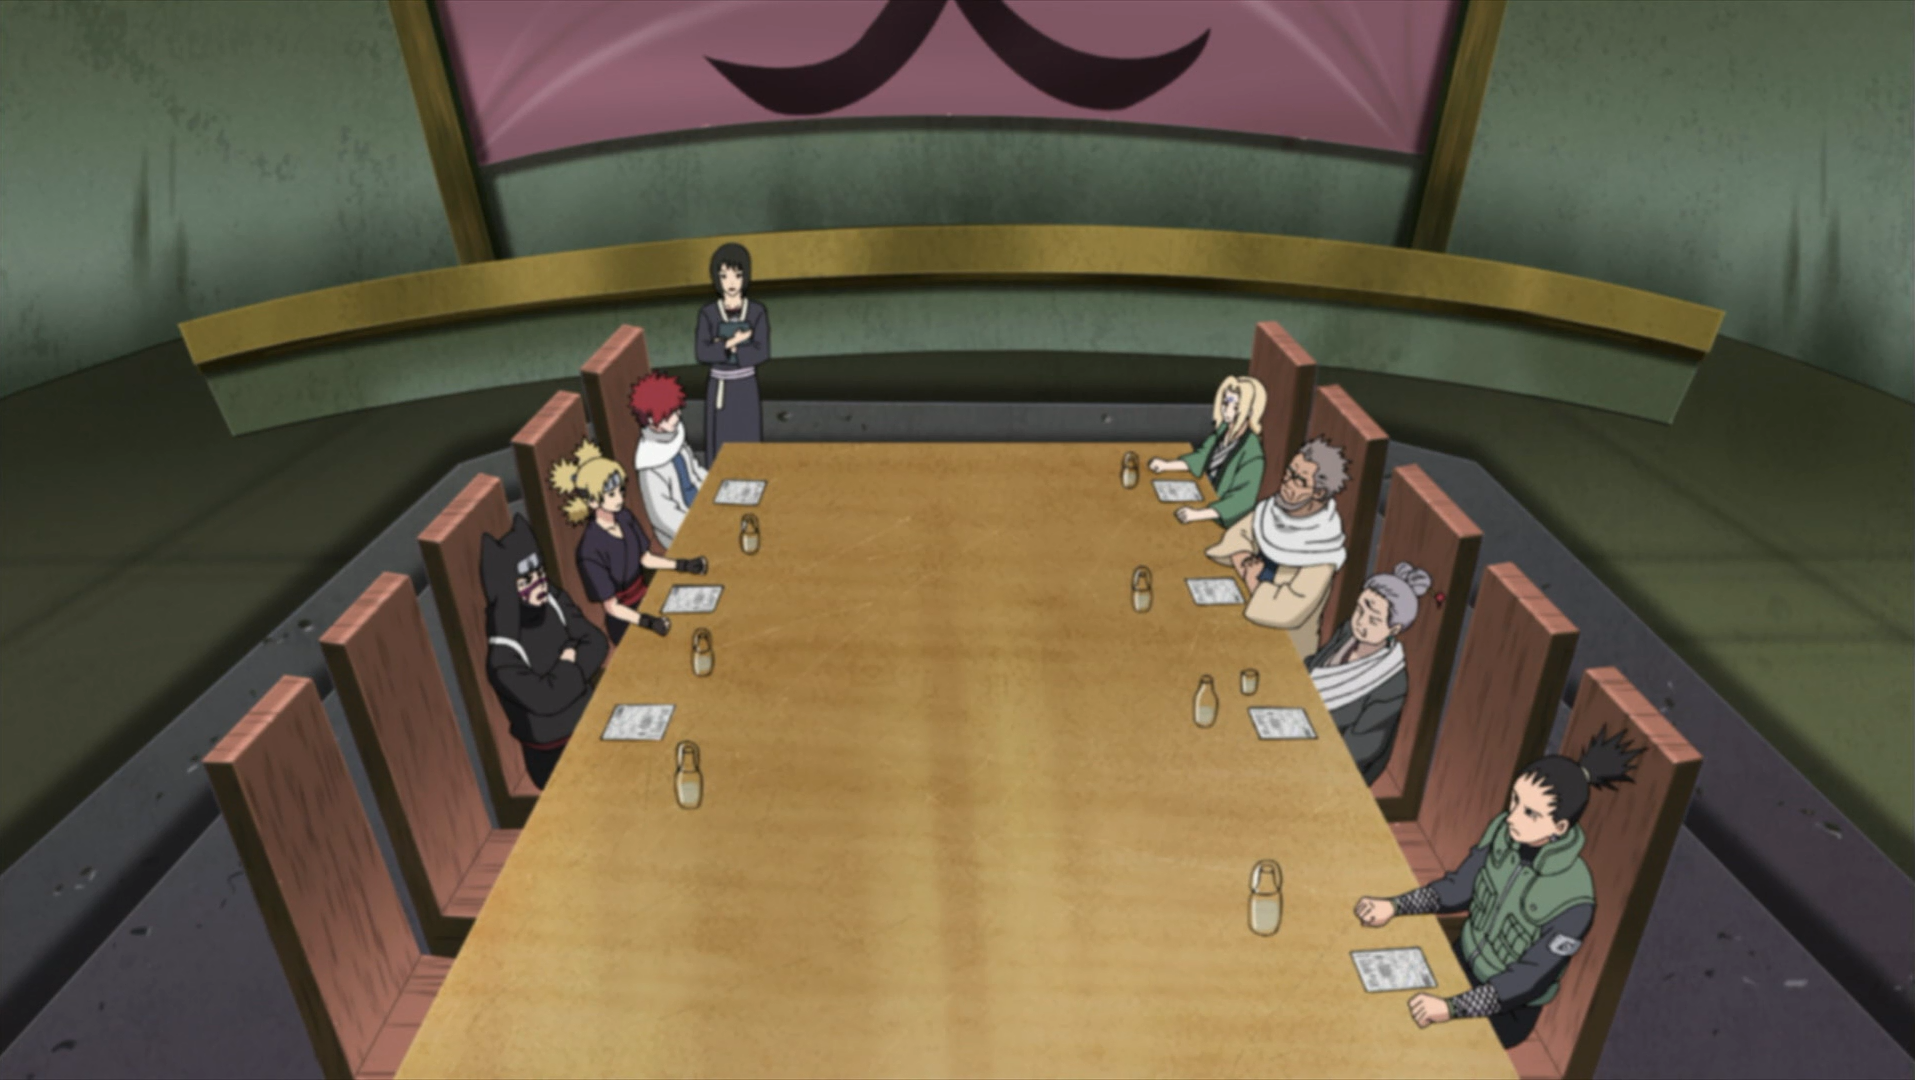 All The Www narutoget com Episode 410 - Pantheon